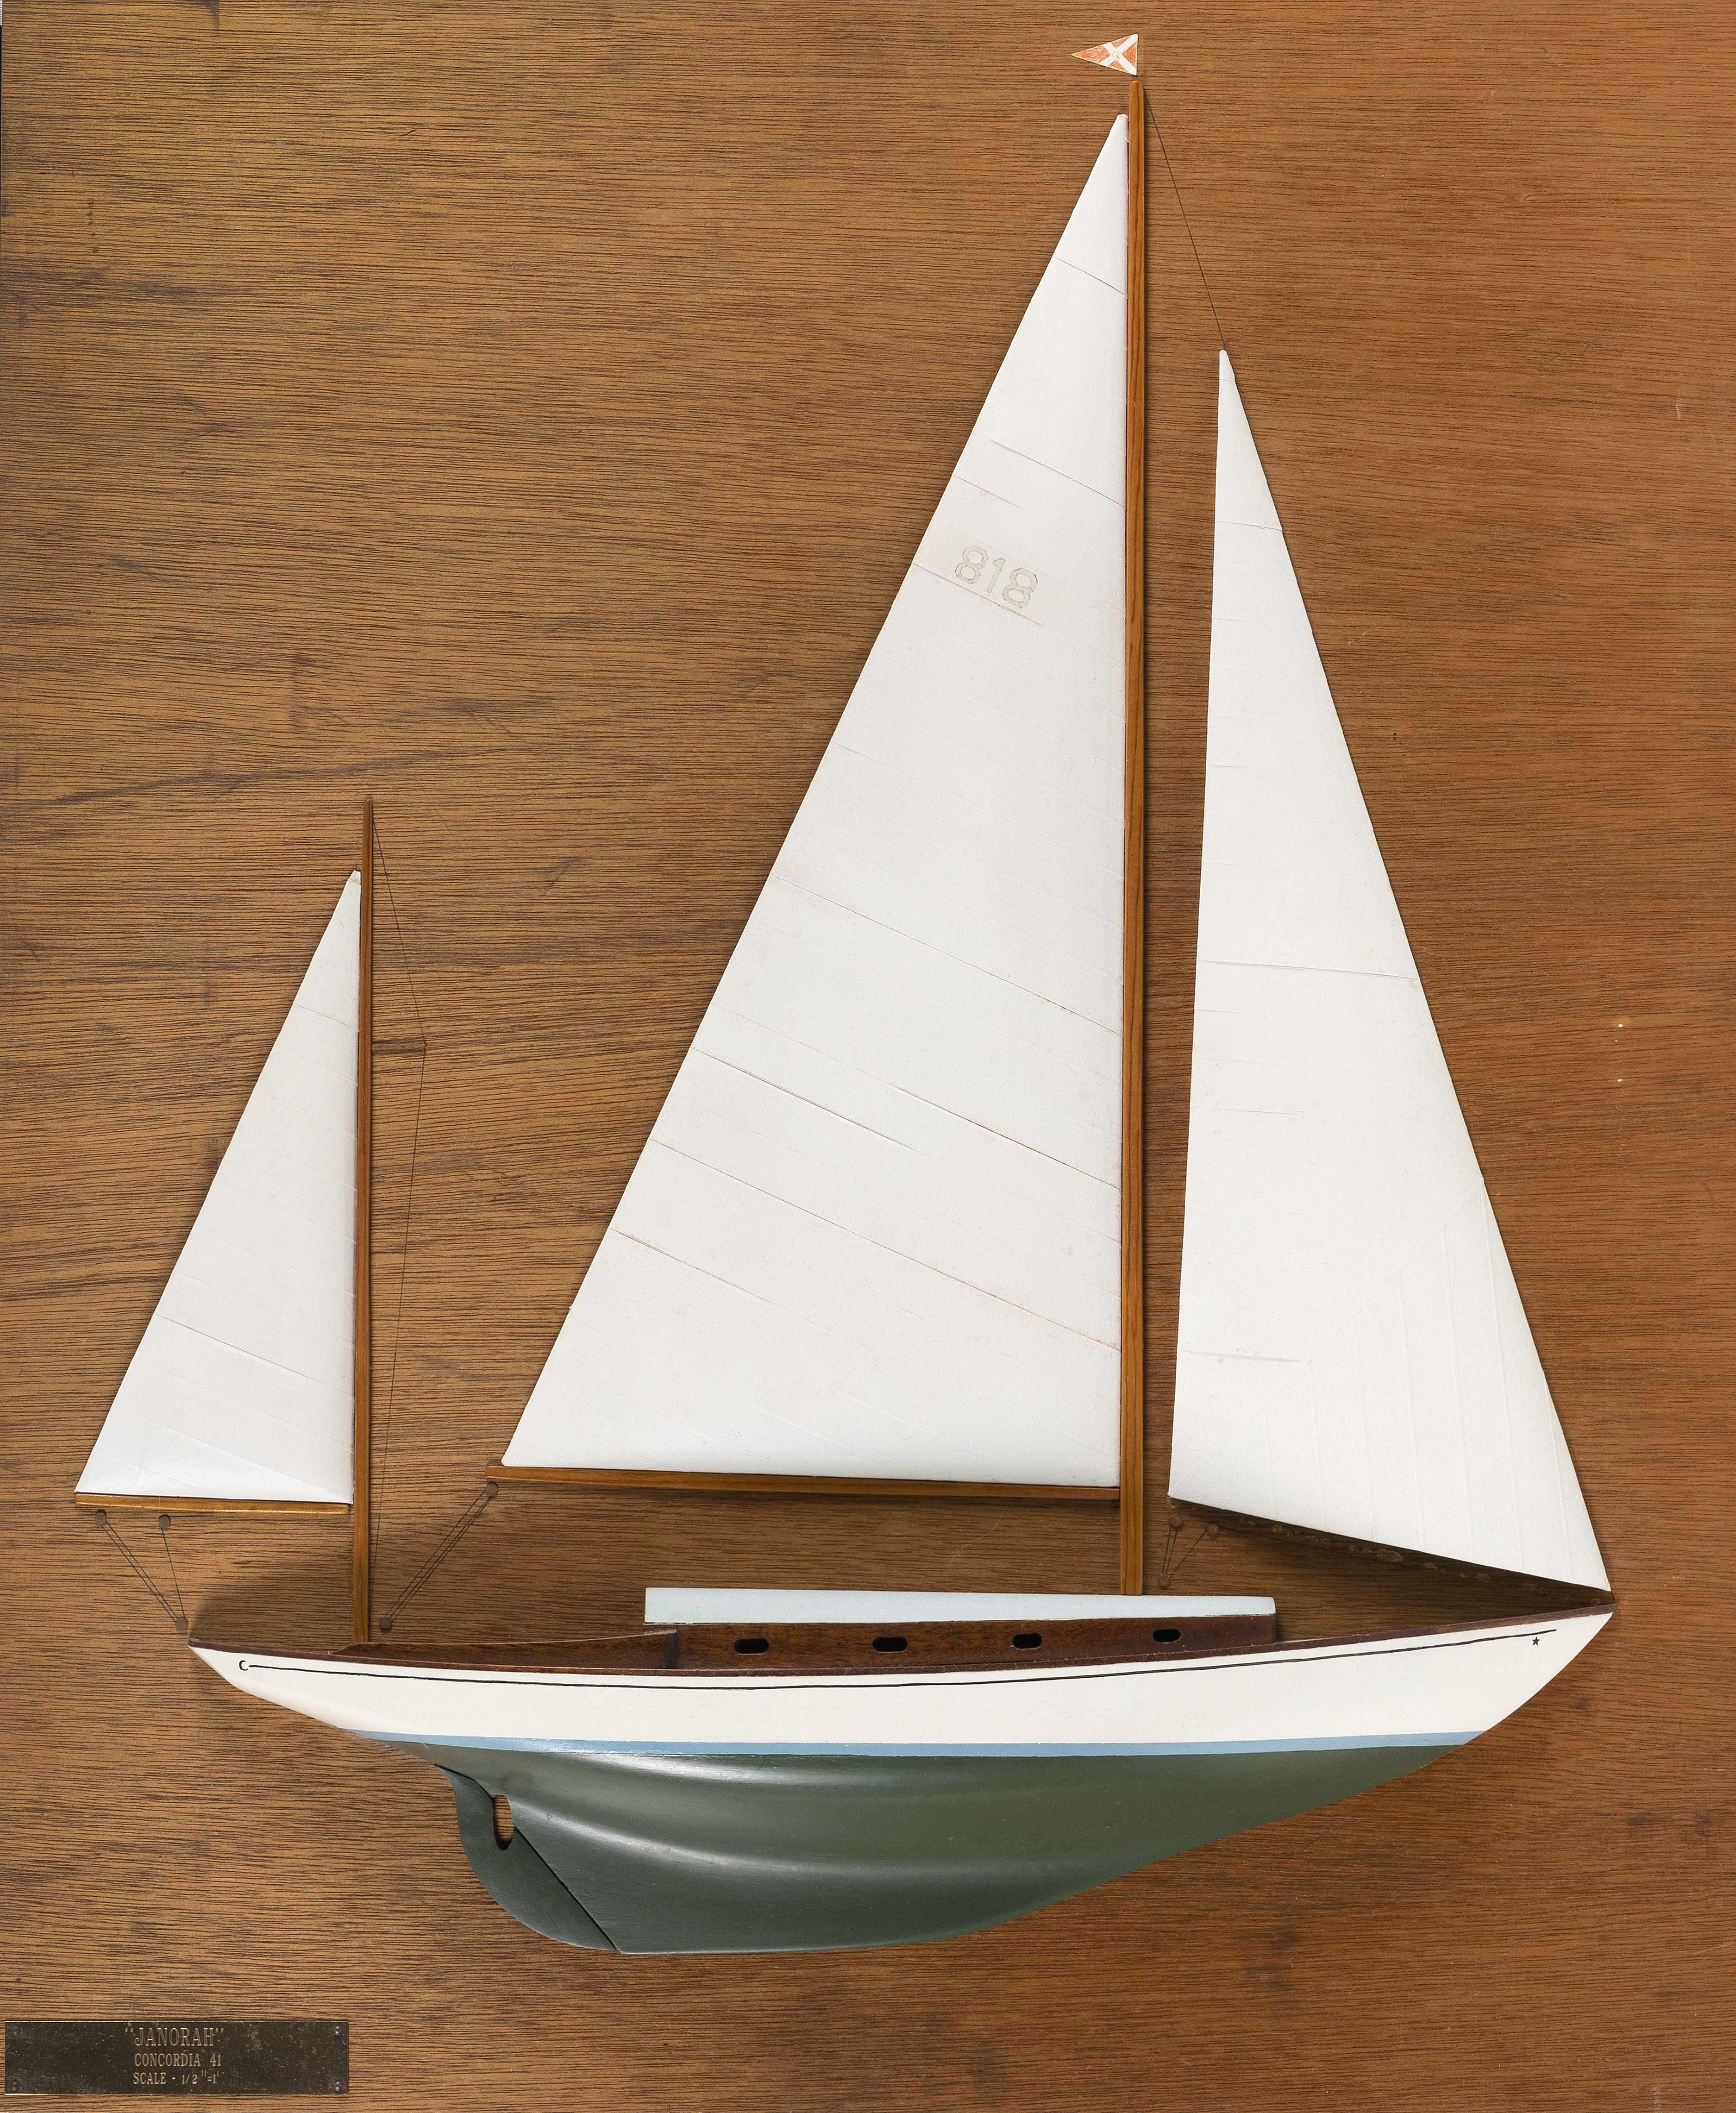 MOUNTED HALF HULL MODEL OF THE SAILBOAT